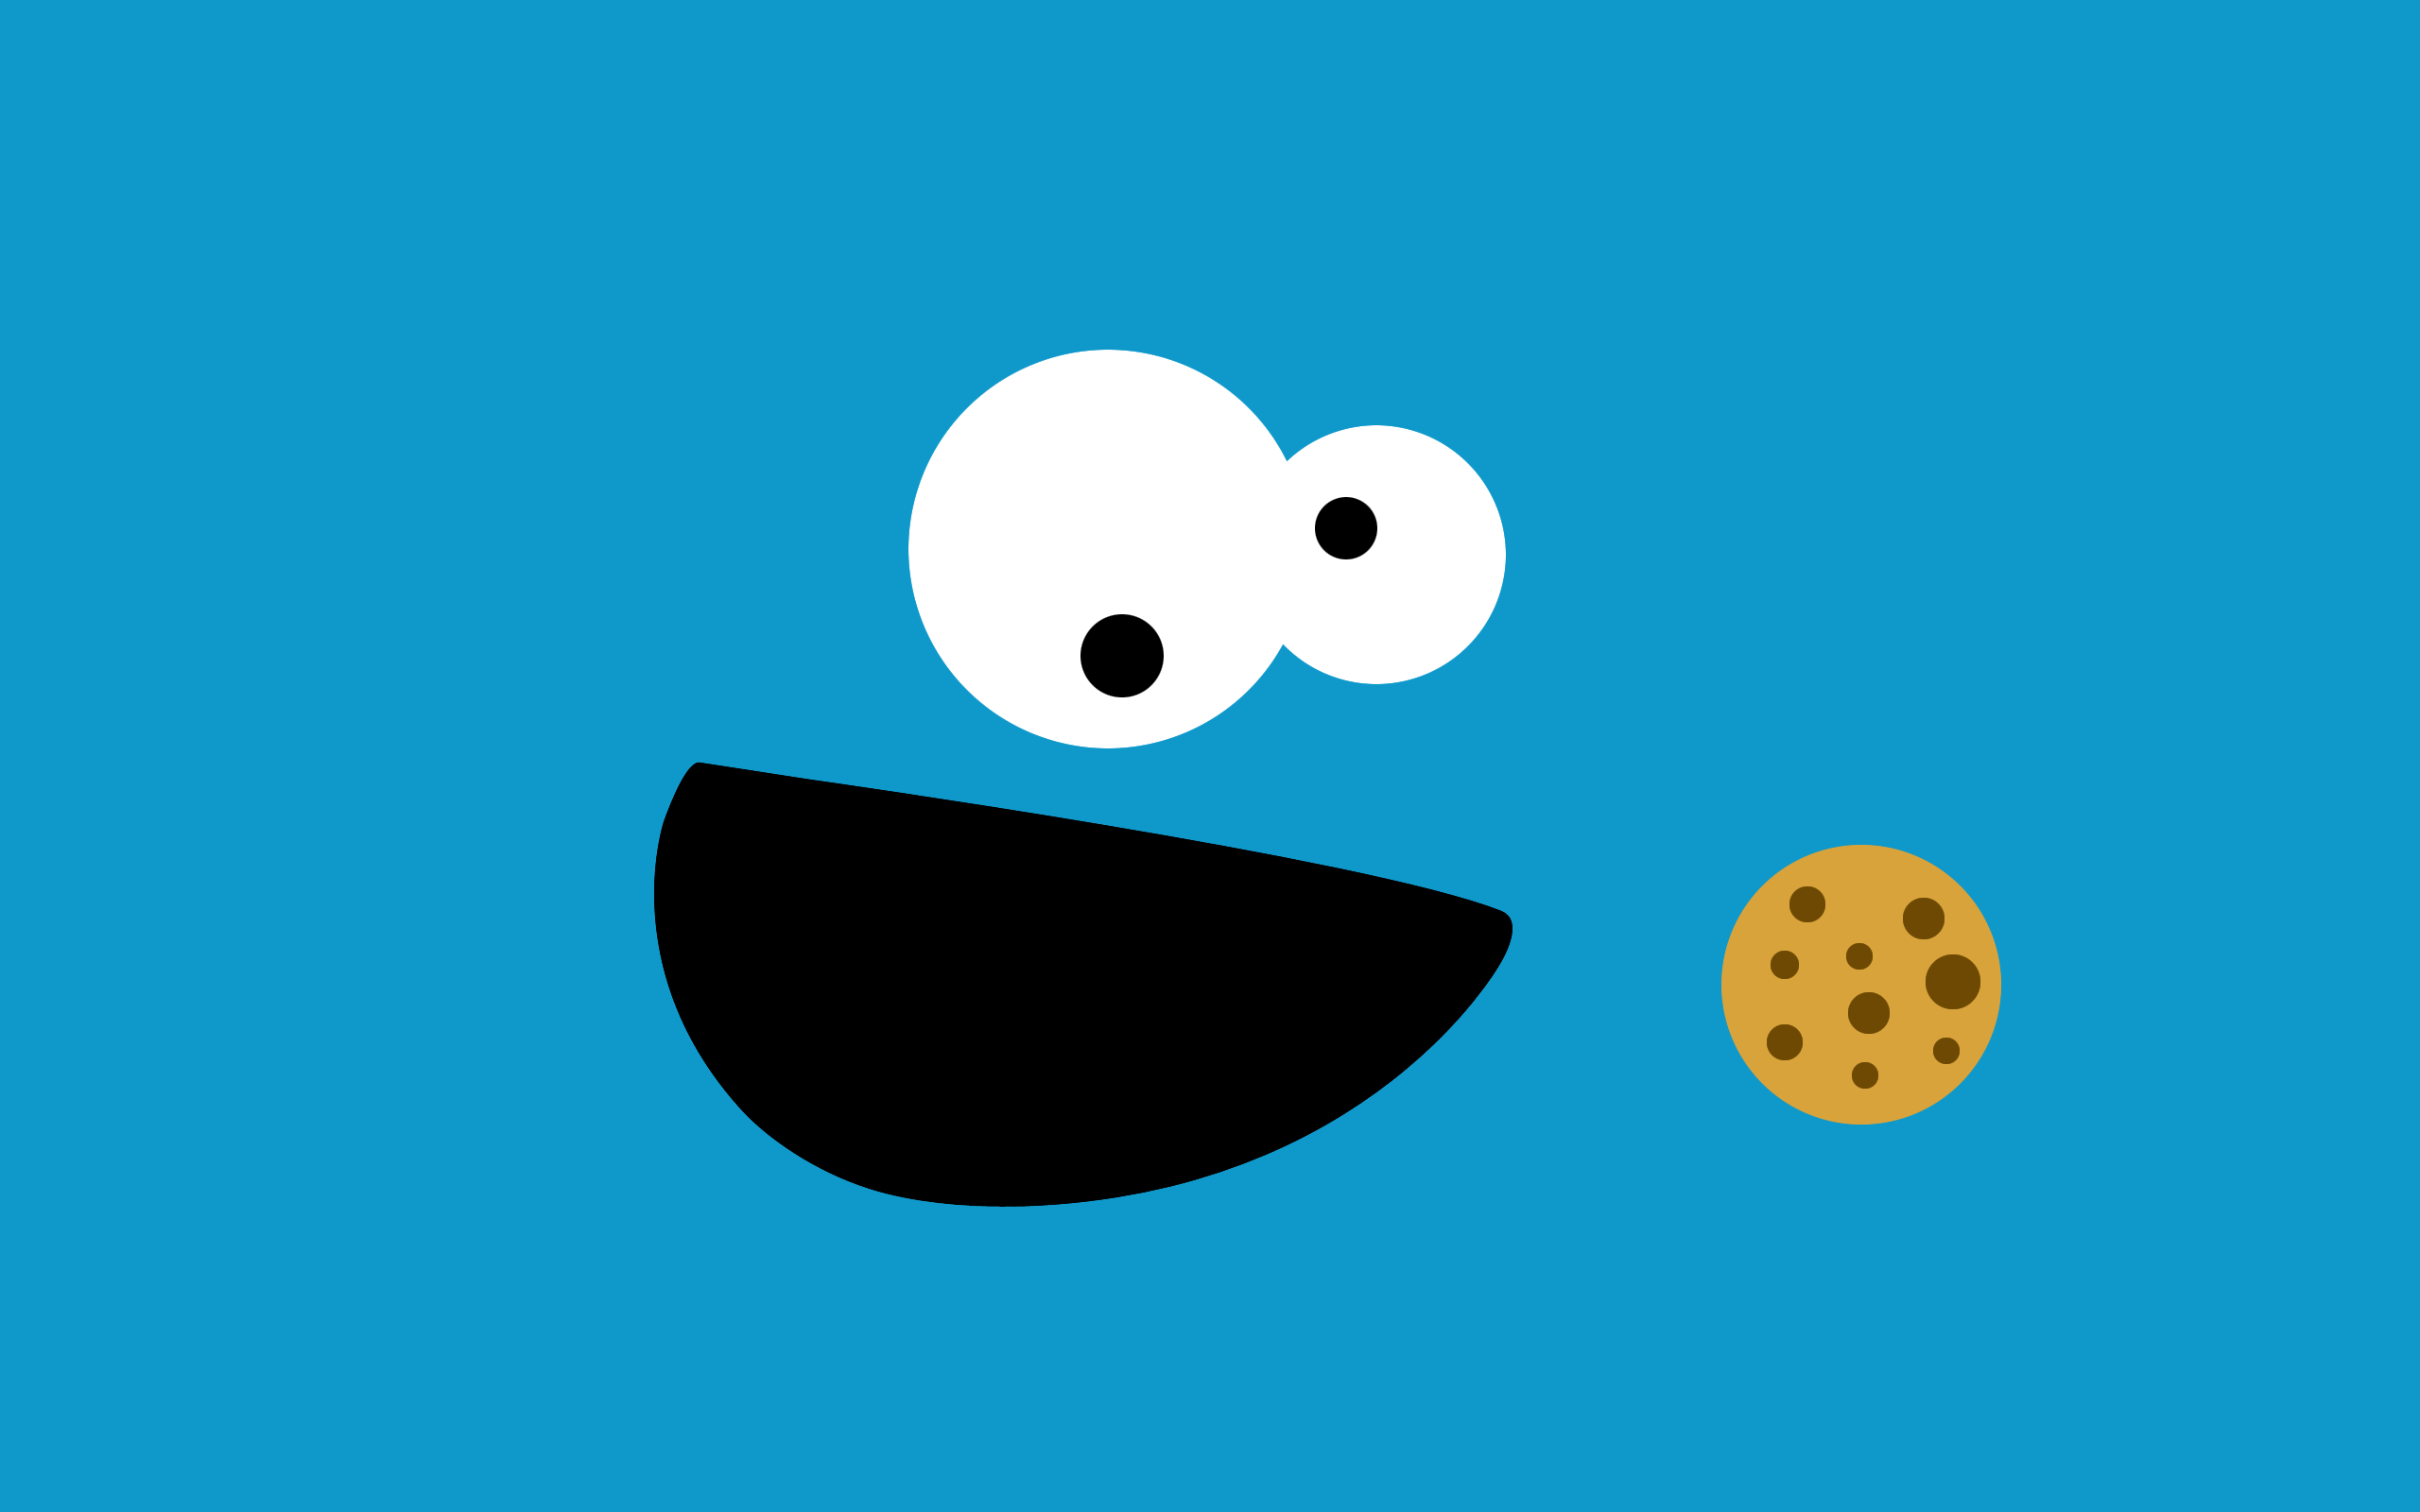 Wallpapers For > Cookie Monster Wallpaper Desktop